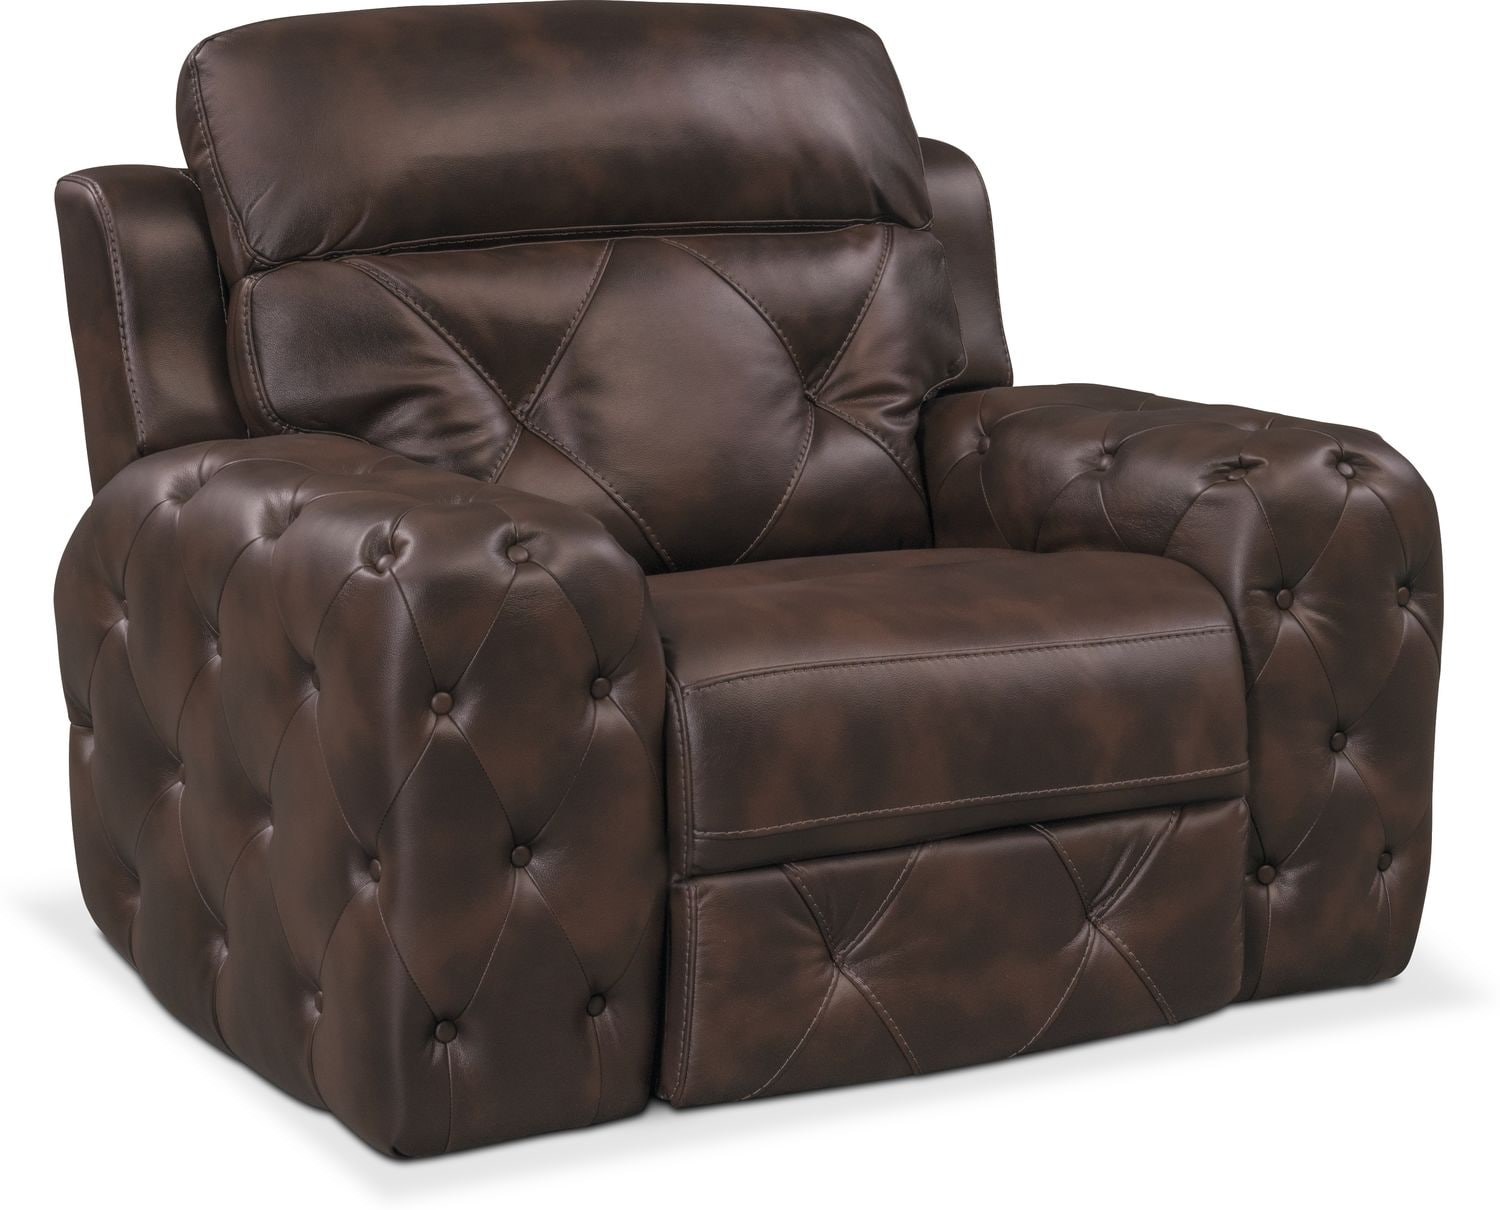 Living room furniture macklin power recliner hover touch to zoom click to change image